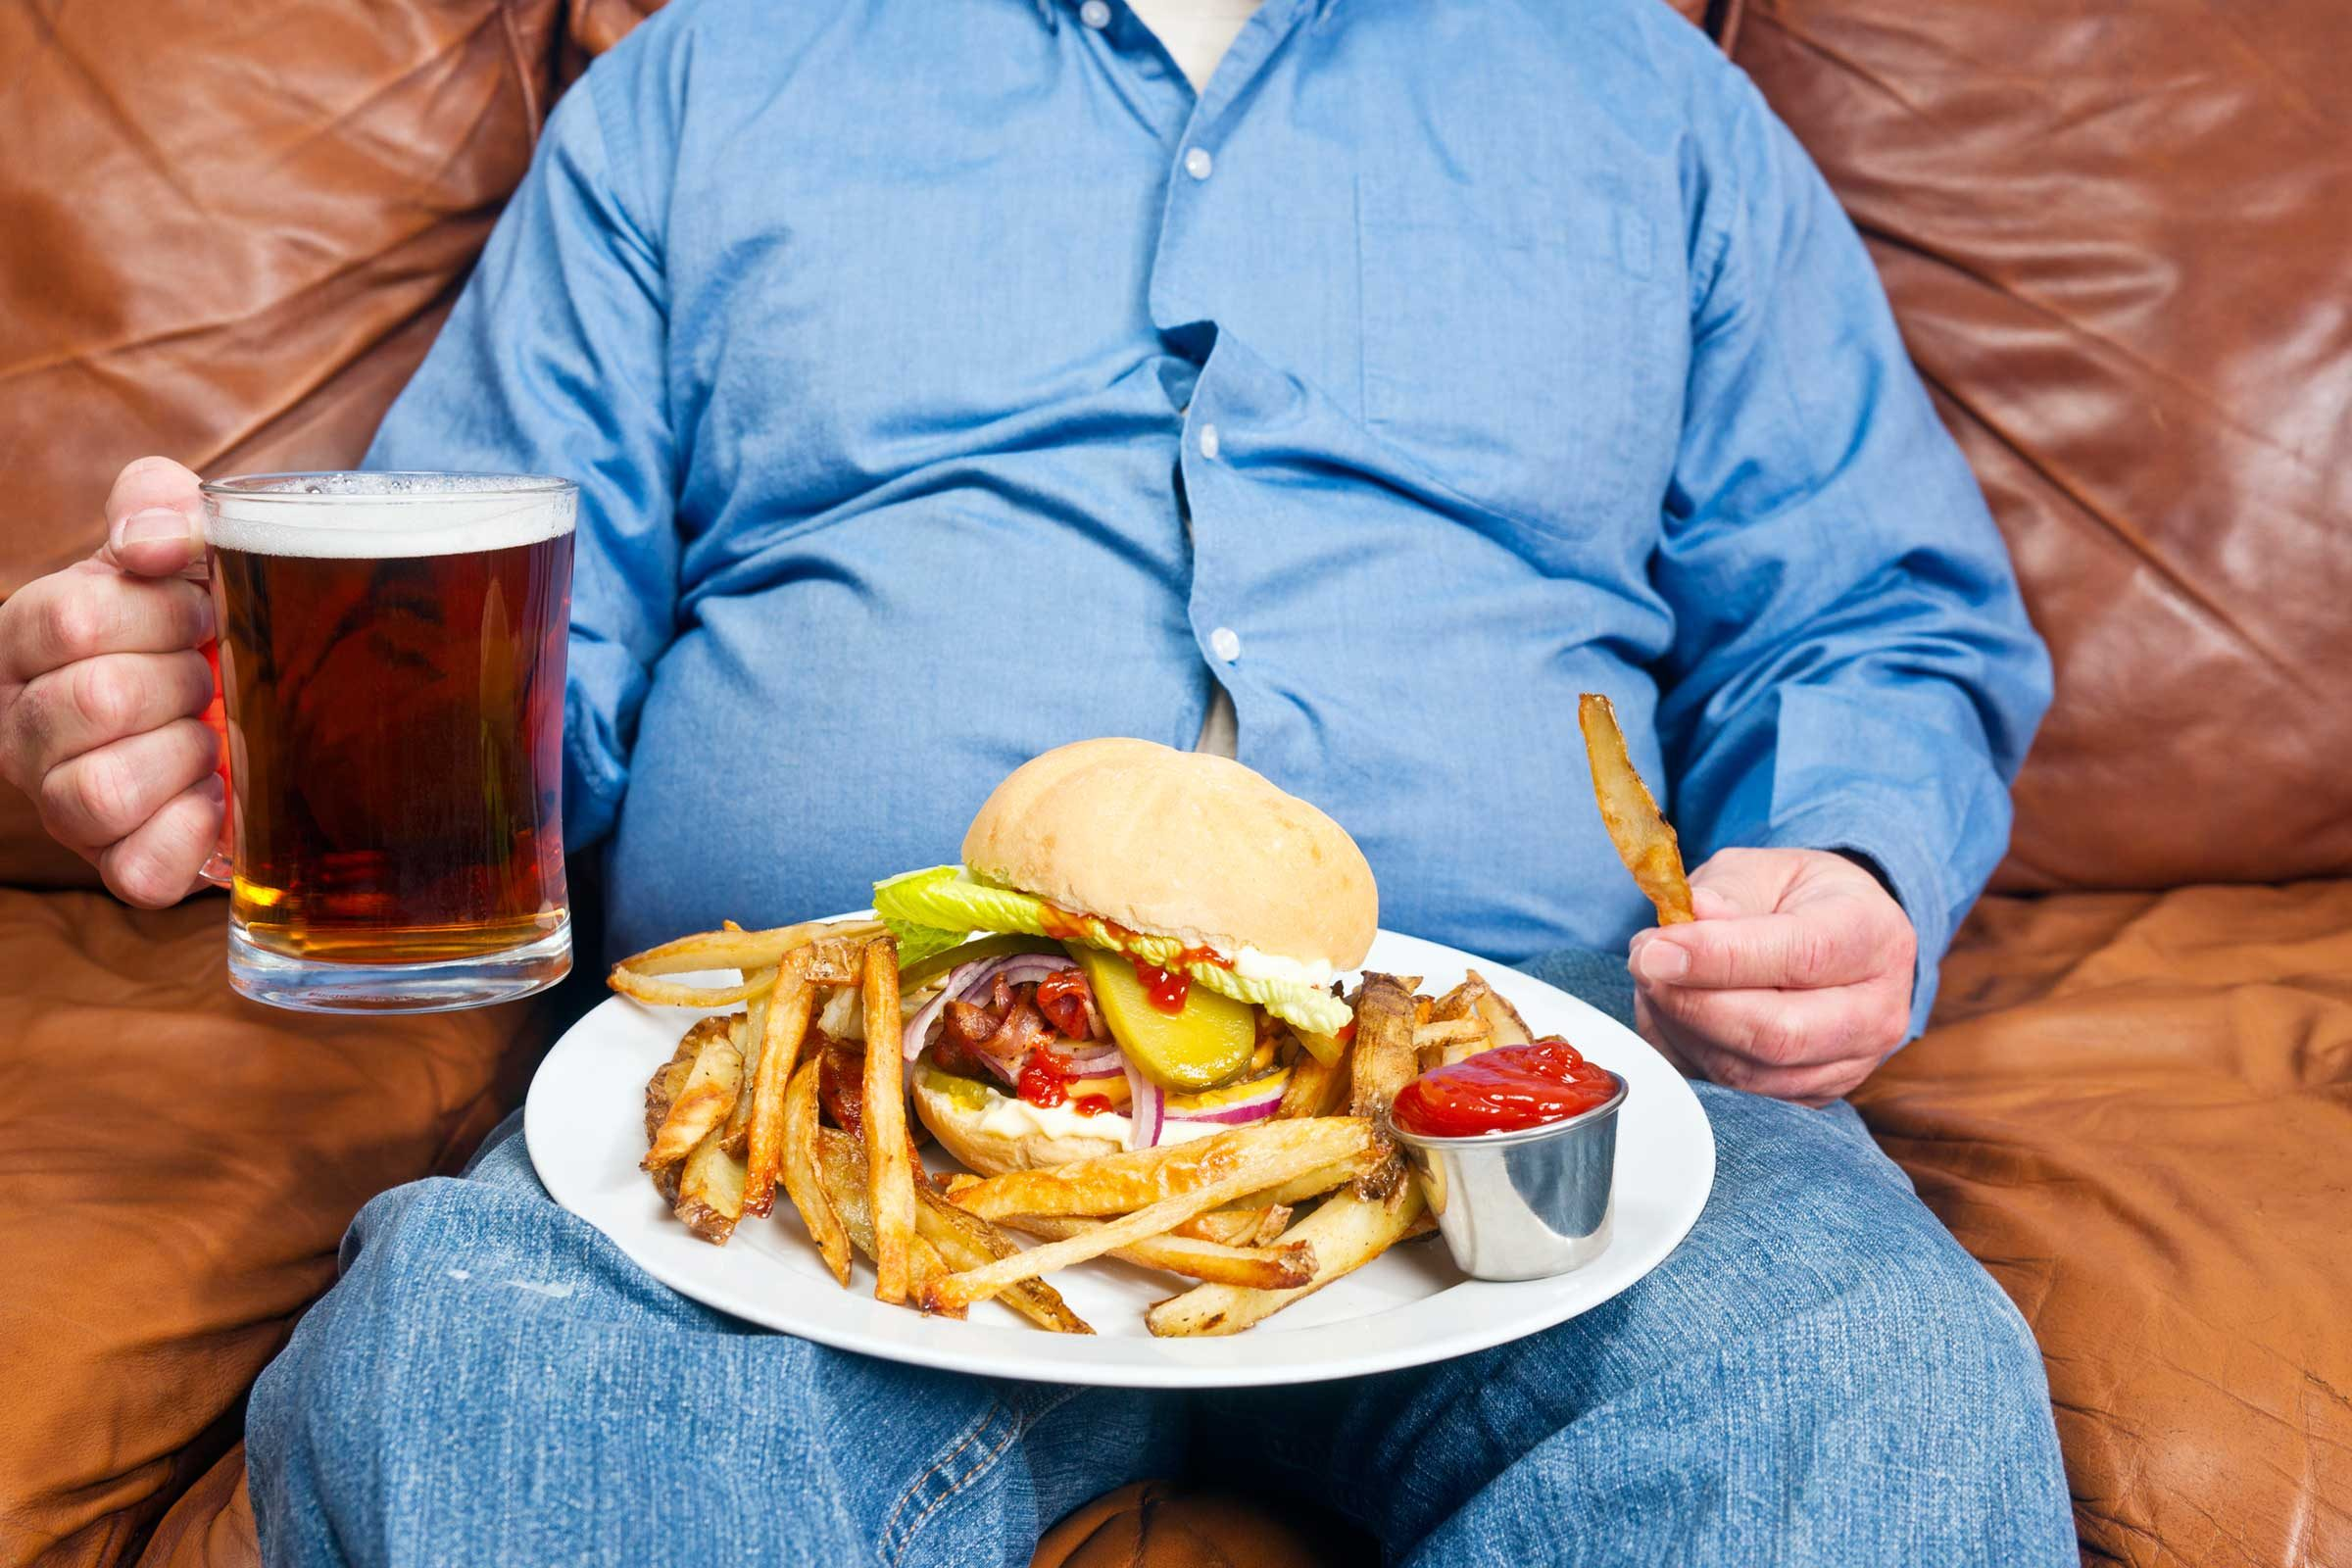 Food Addiction Recovery Stories